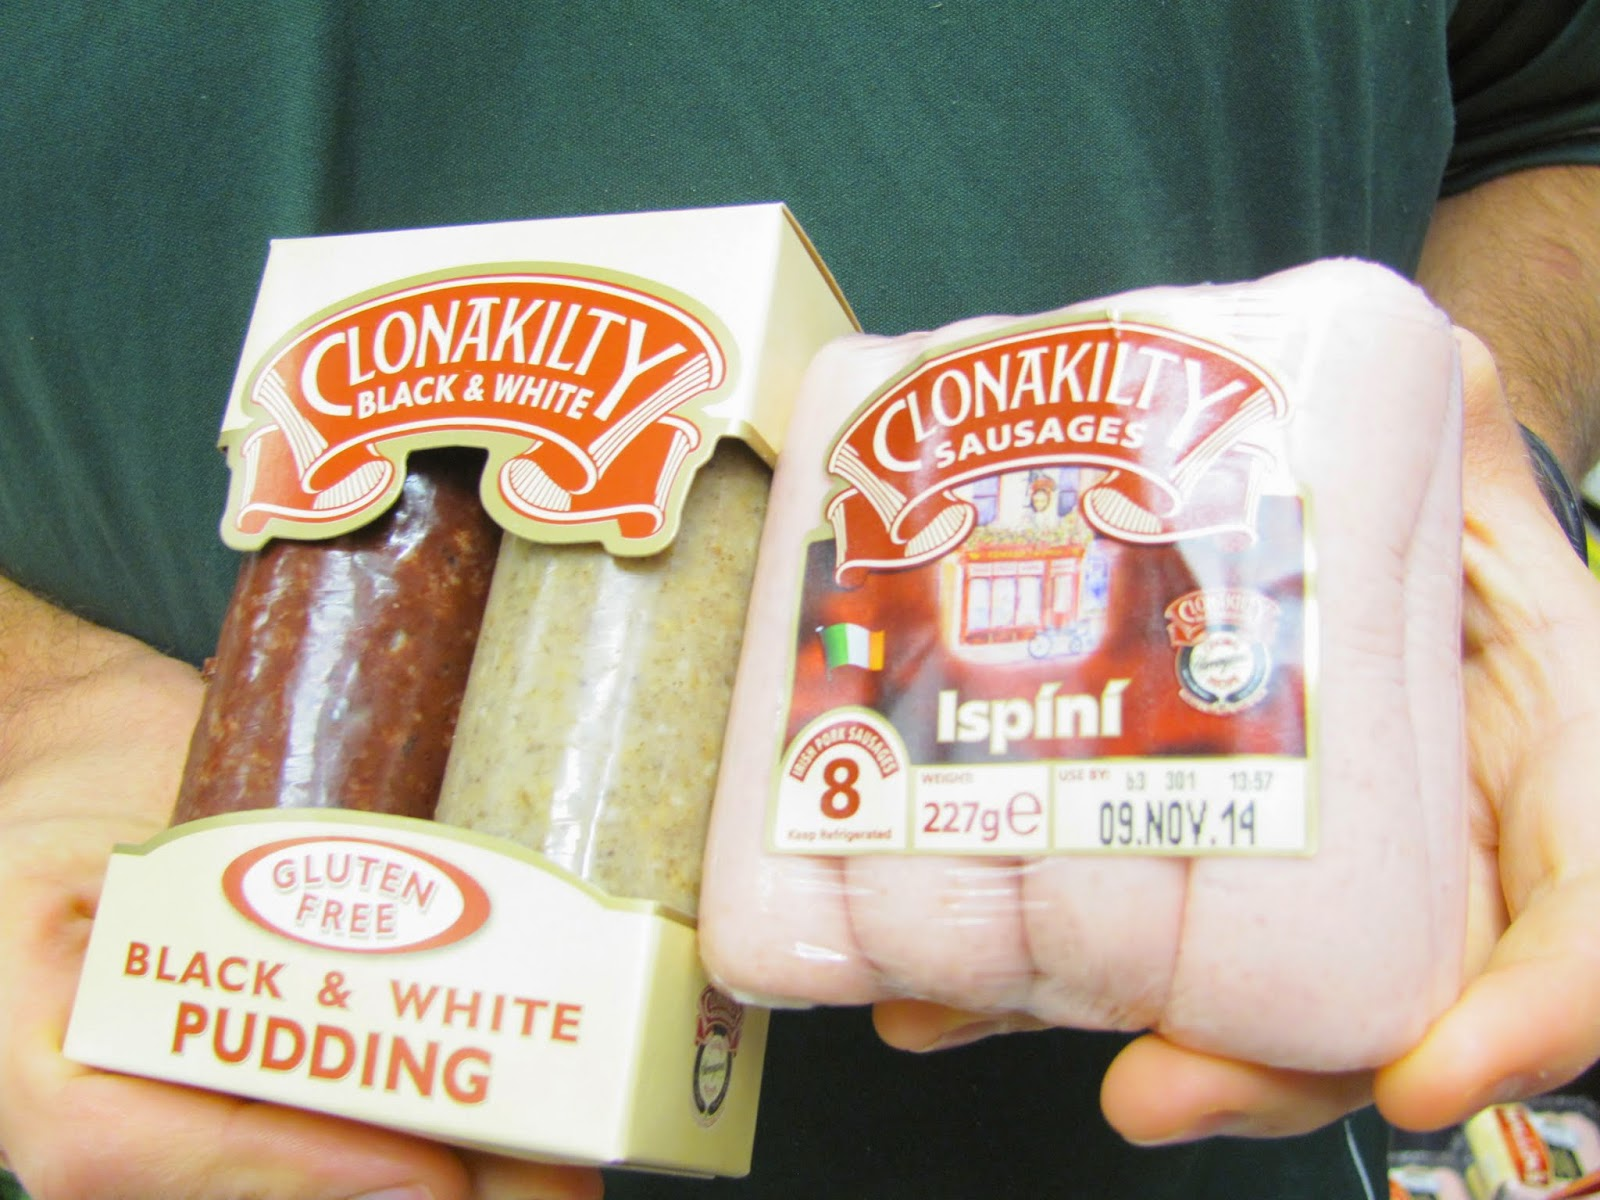 Black and White Pudding and Sausage from Clonakilty